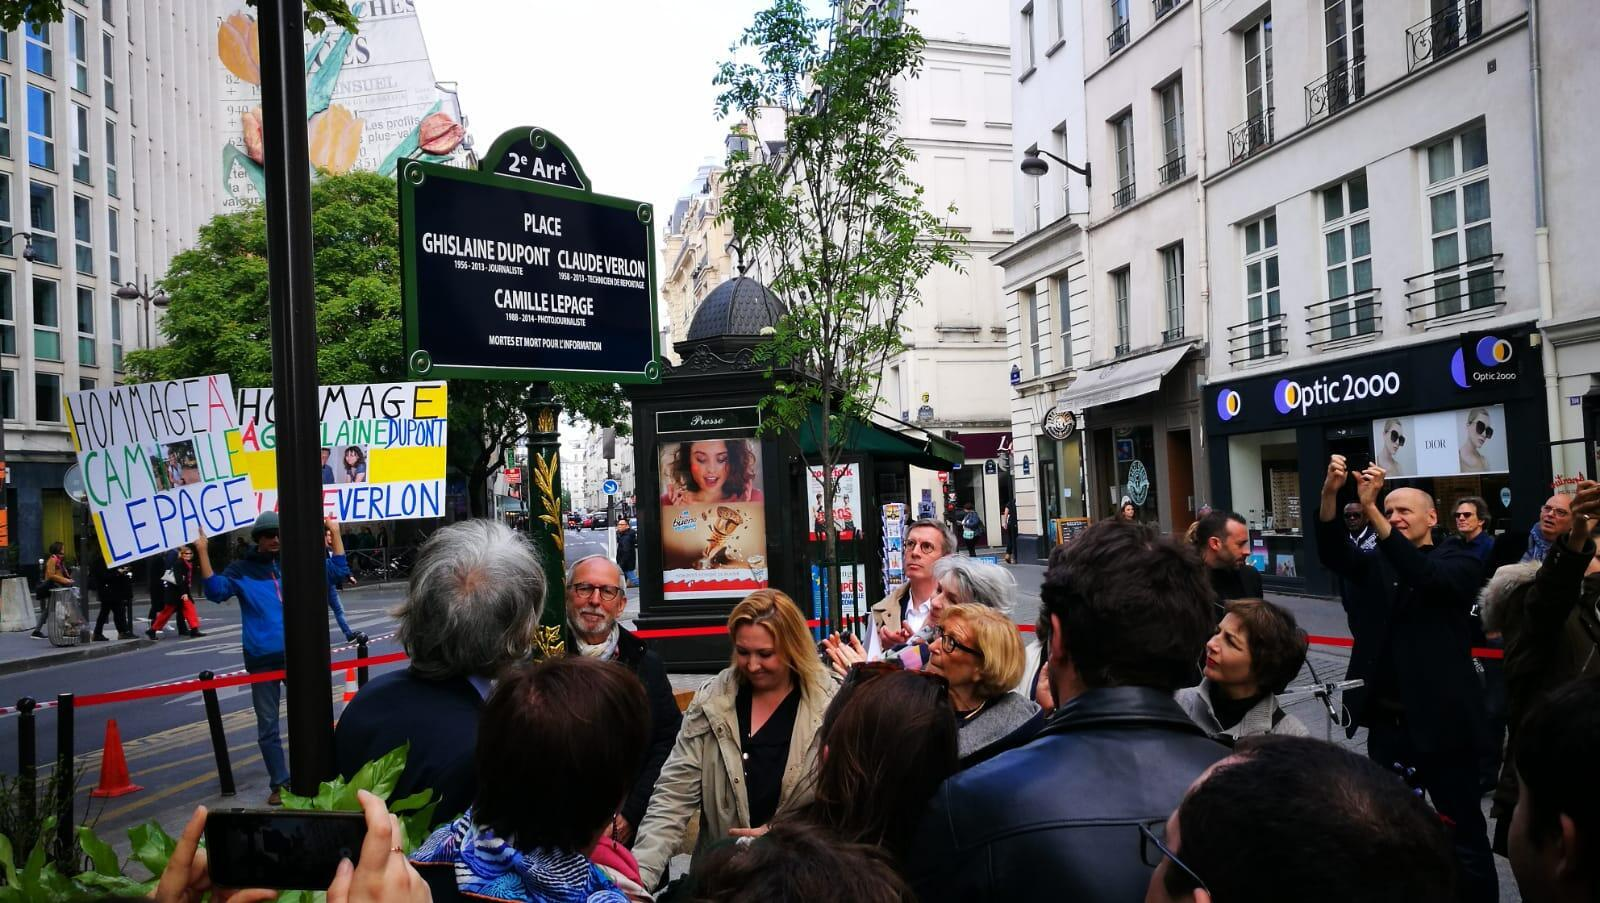 In homage to murdered journalists, this plaza  in Paris has been renamed after Ghislaine Dupont, Claude Verlon and Camille Lepage, inaugurated on 3 May, 2019.